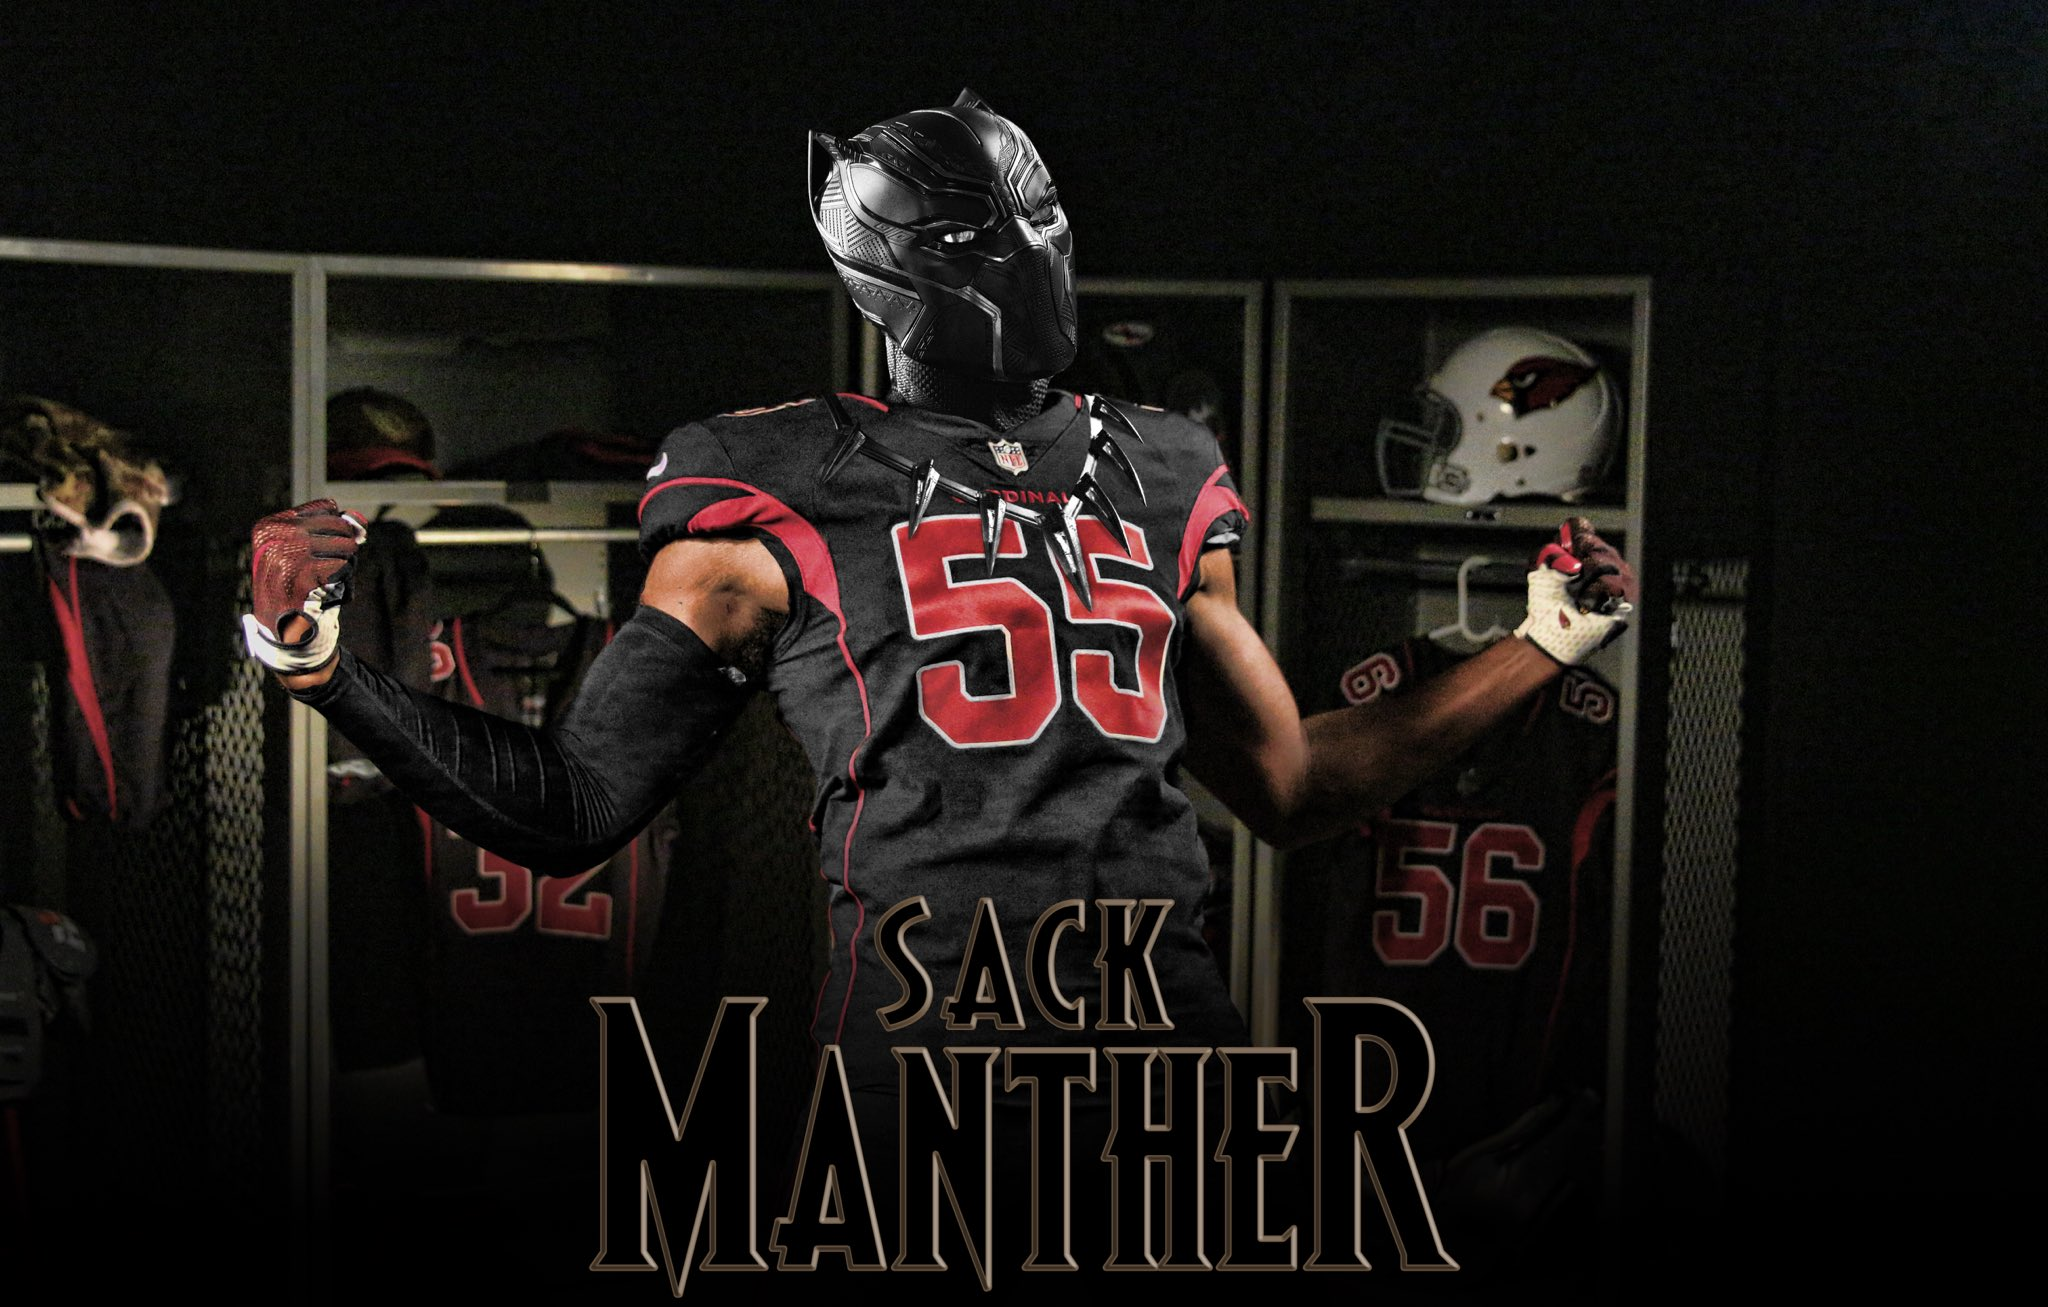 He loves to get after QBs.  They call him the Sack Manther. #BlackPanther https://t.co/Paf0cxzMIp